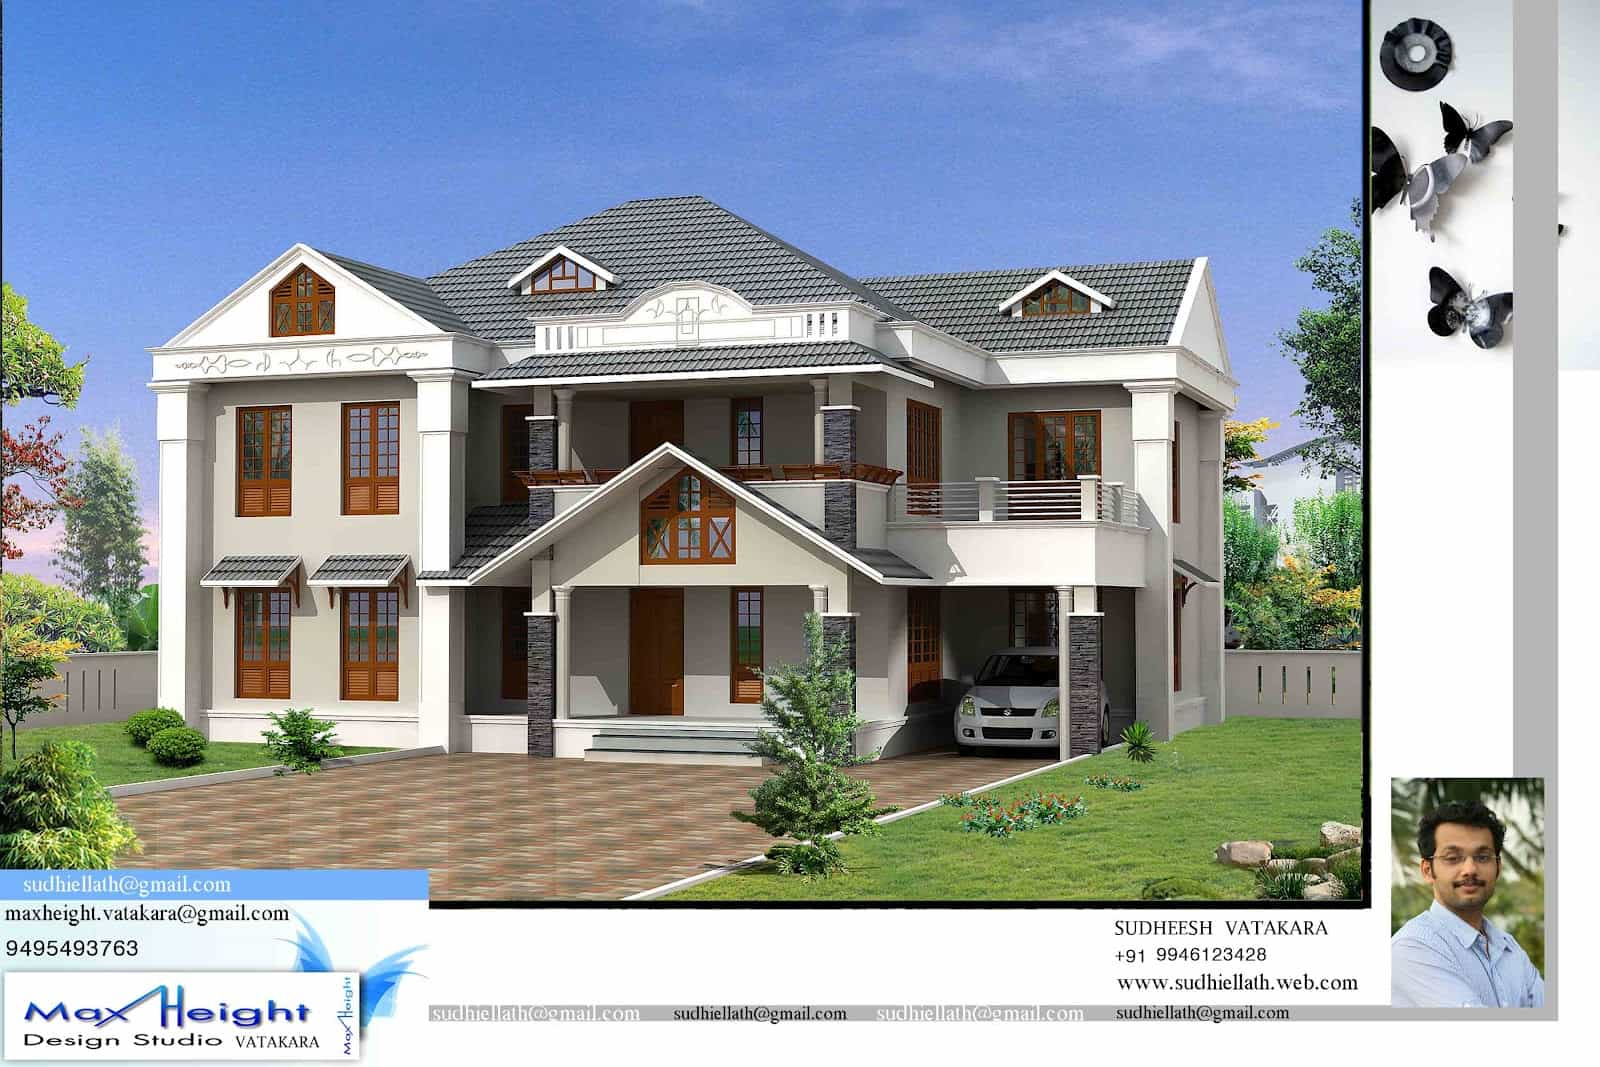 Kerala house model latest kerala style home design for New model houses in kerala